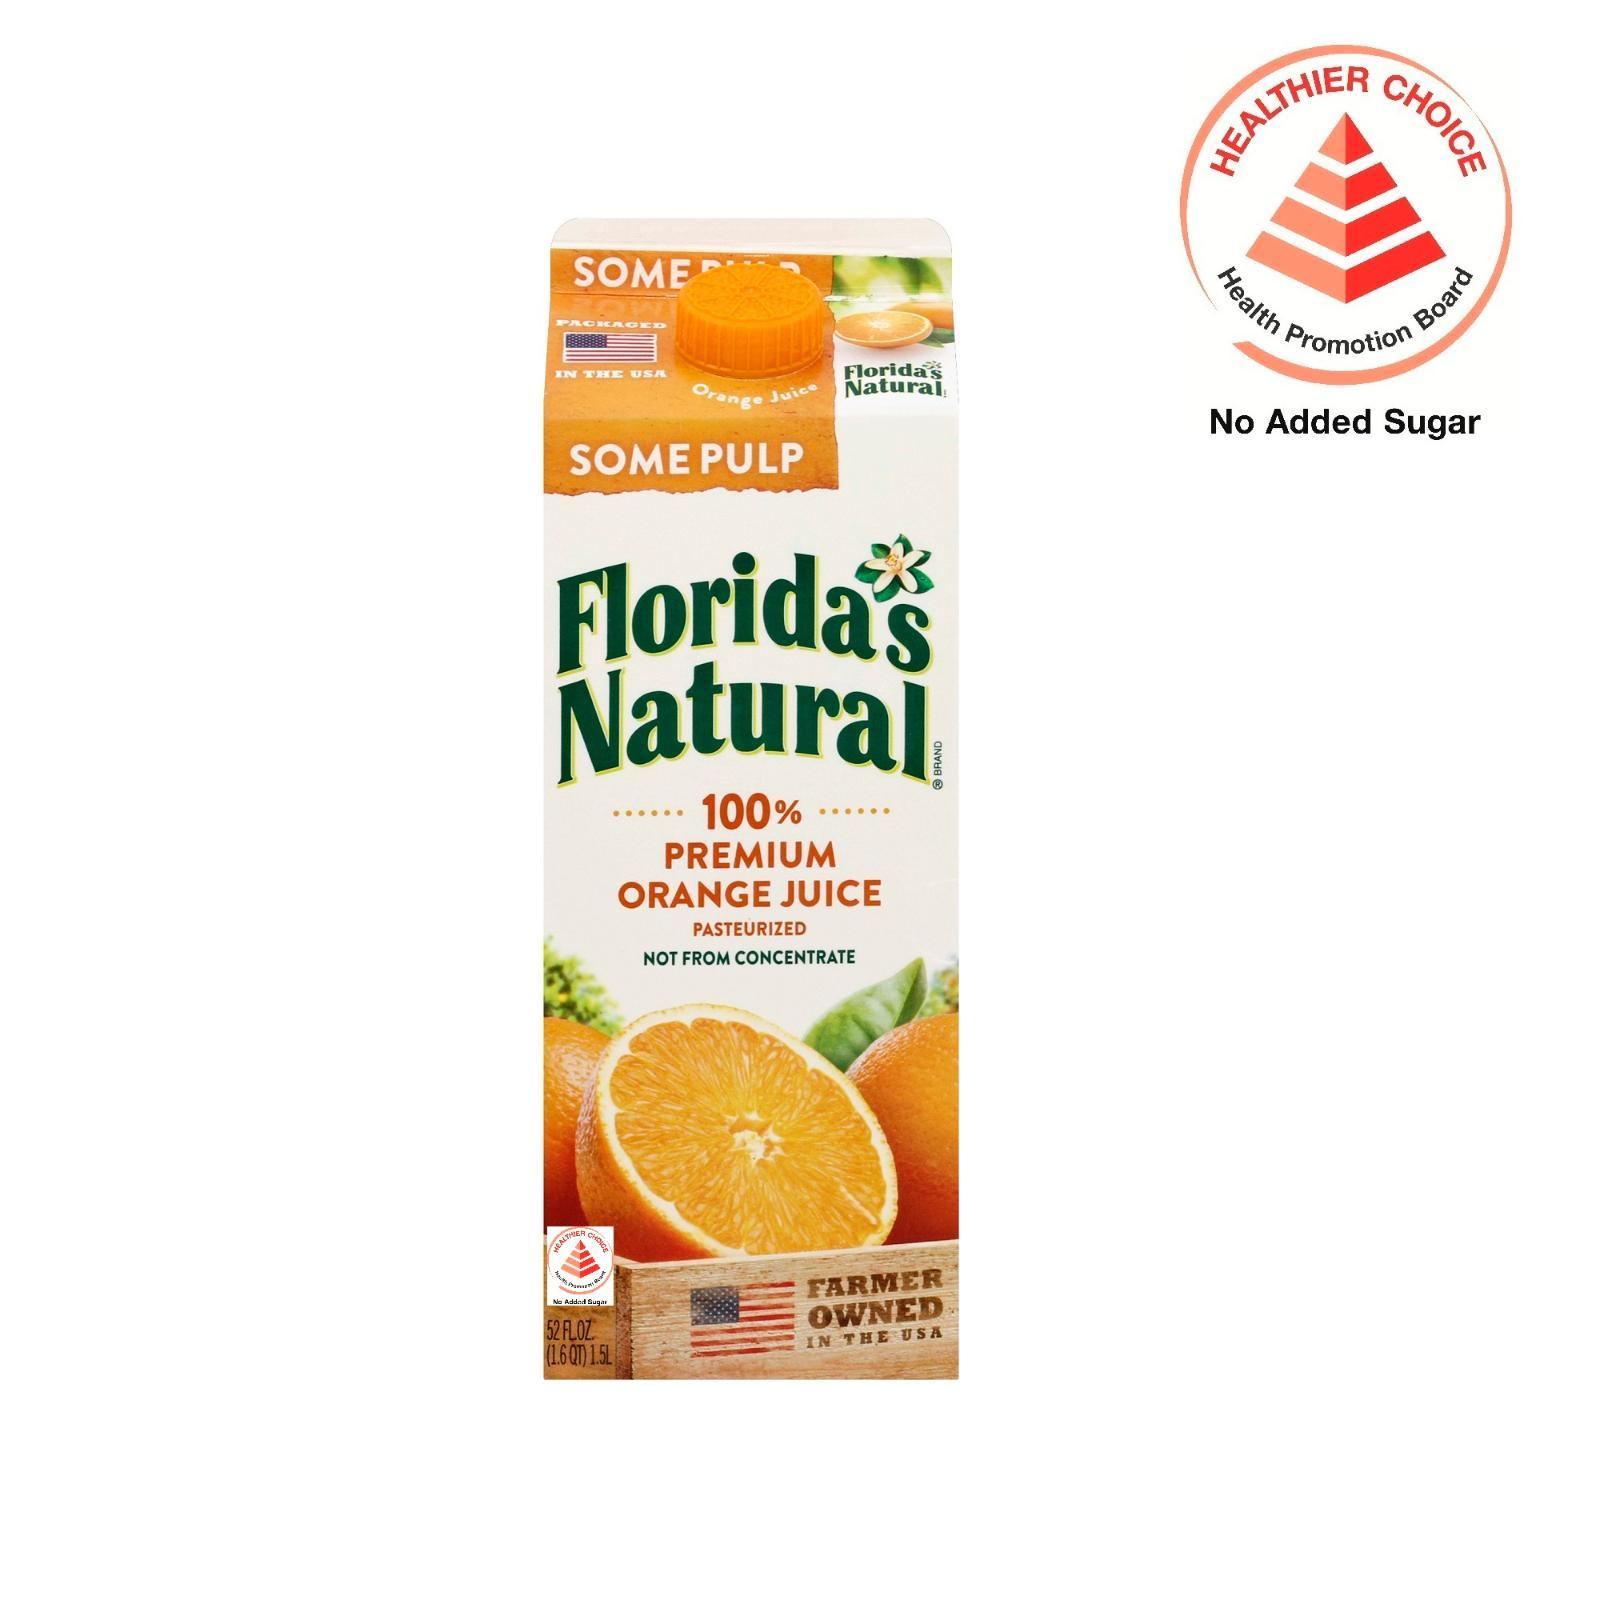 Floridas Natural Nfc Home Squeezed (some Pulp) Orange Juice By Redmart.